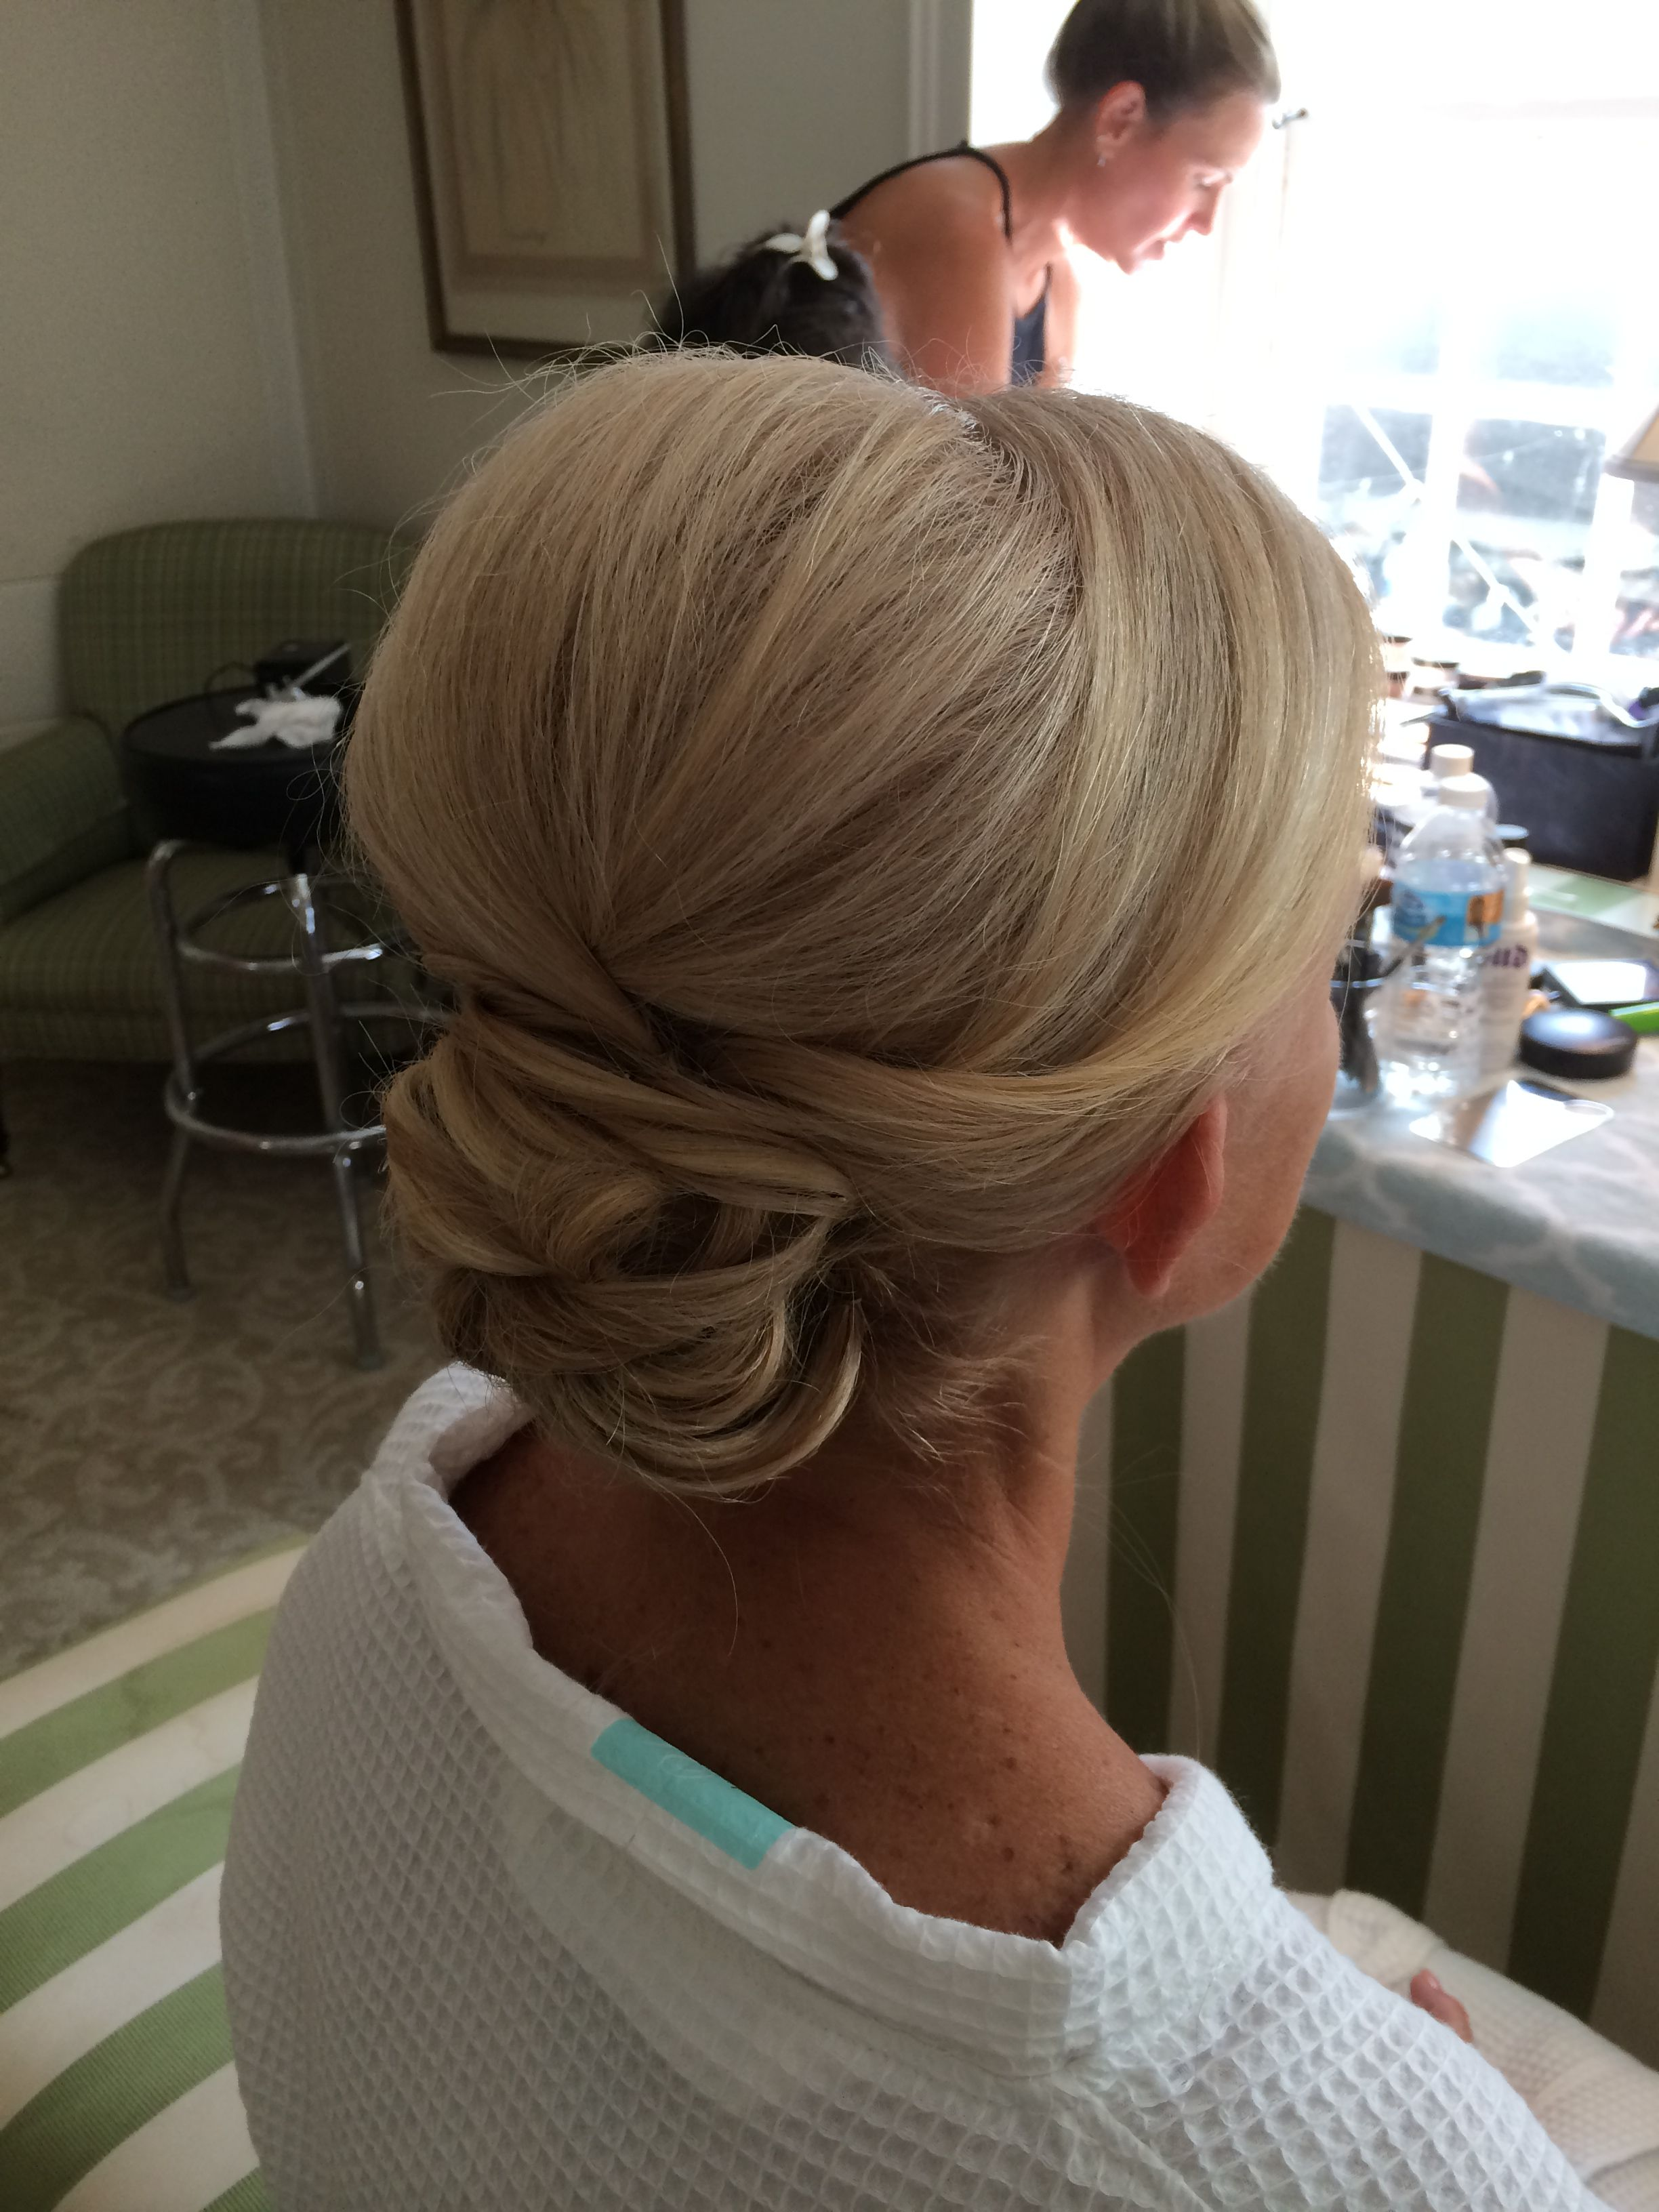 mother of the bride hair styles best 25 of the hairstyles ideas on 1795 | 52099566404a2ec03ddc1de0f5e19afe